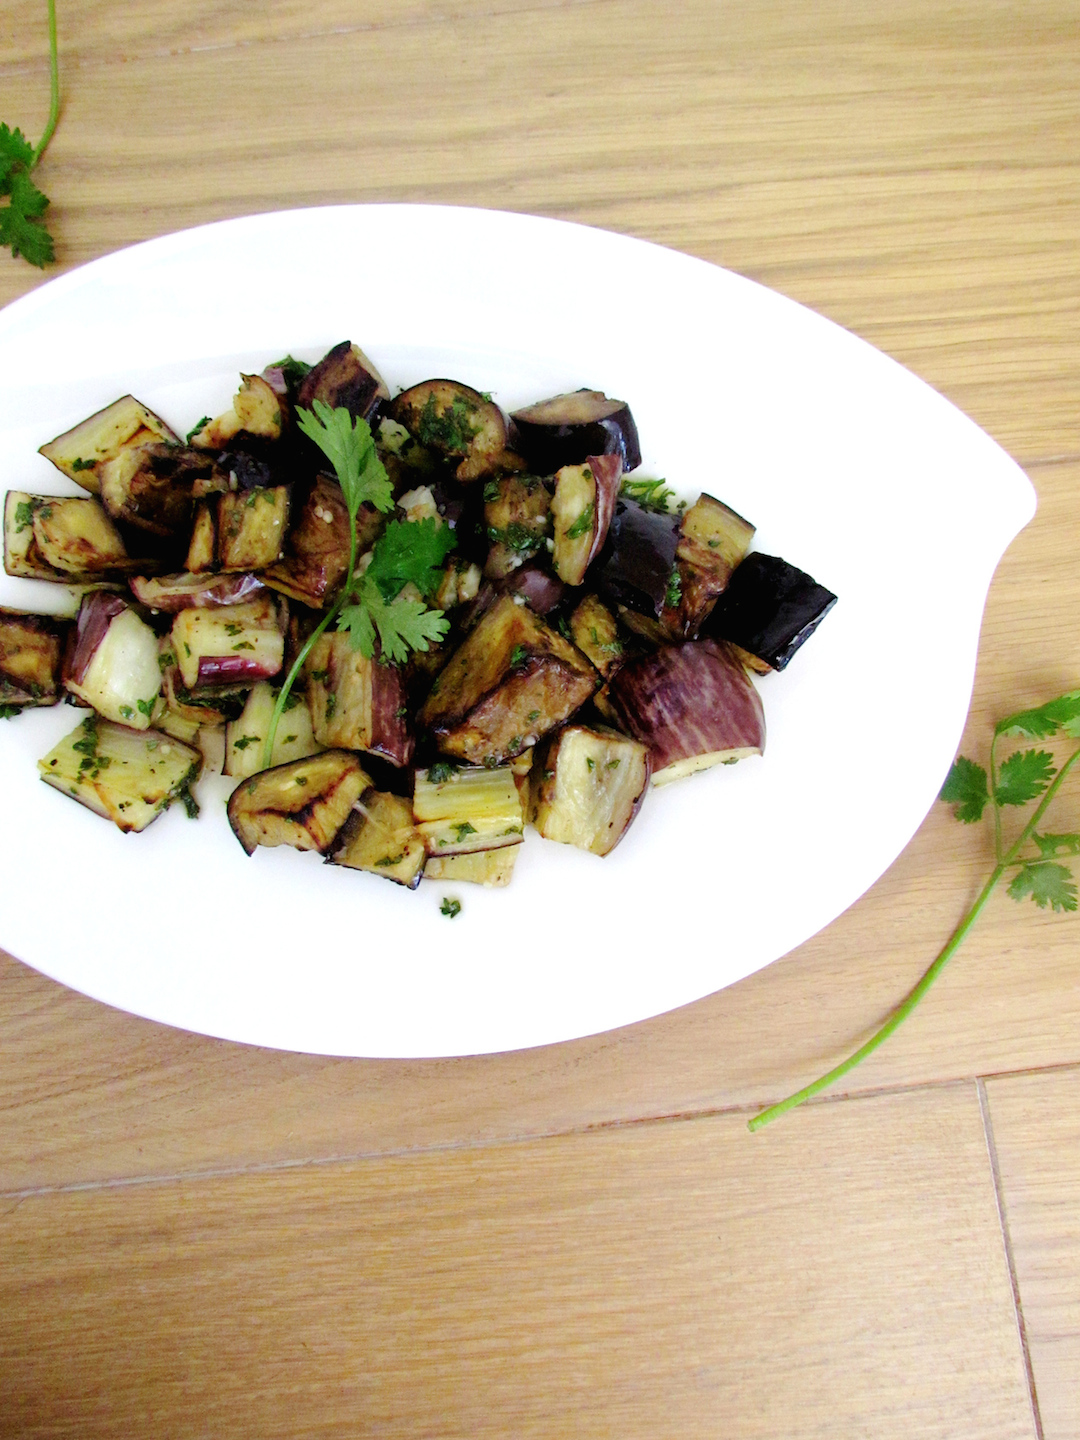 roasted and marinated eggplants with herbs | www.savormania.com